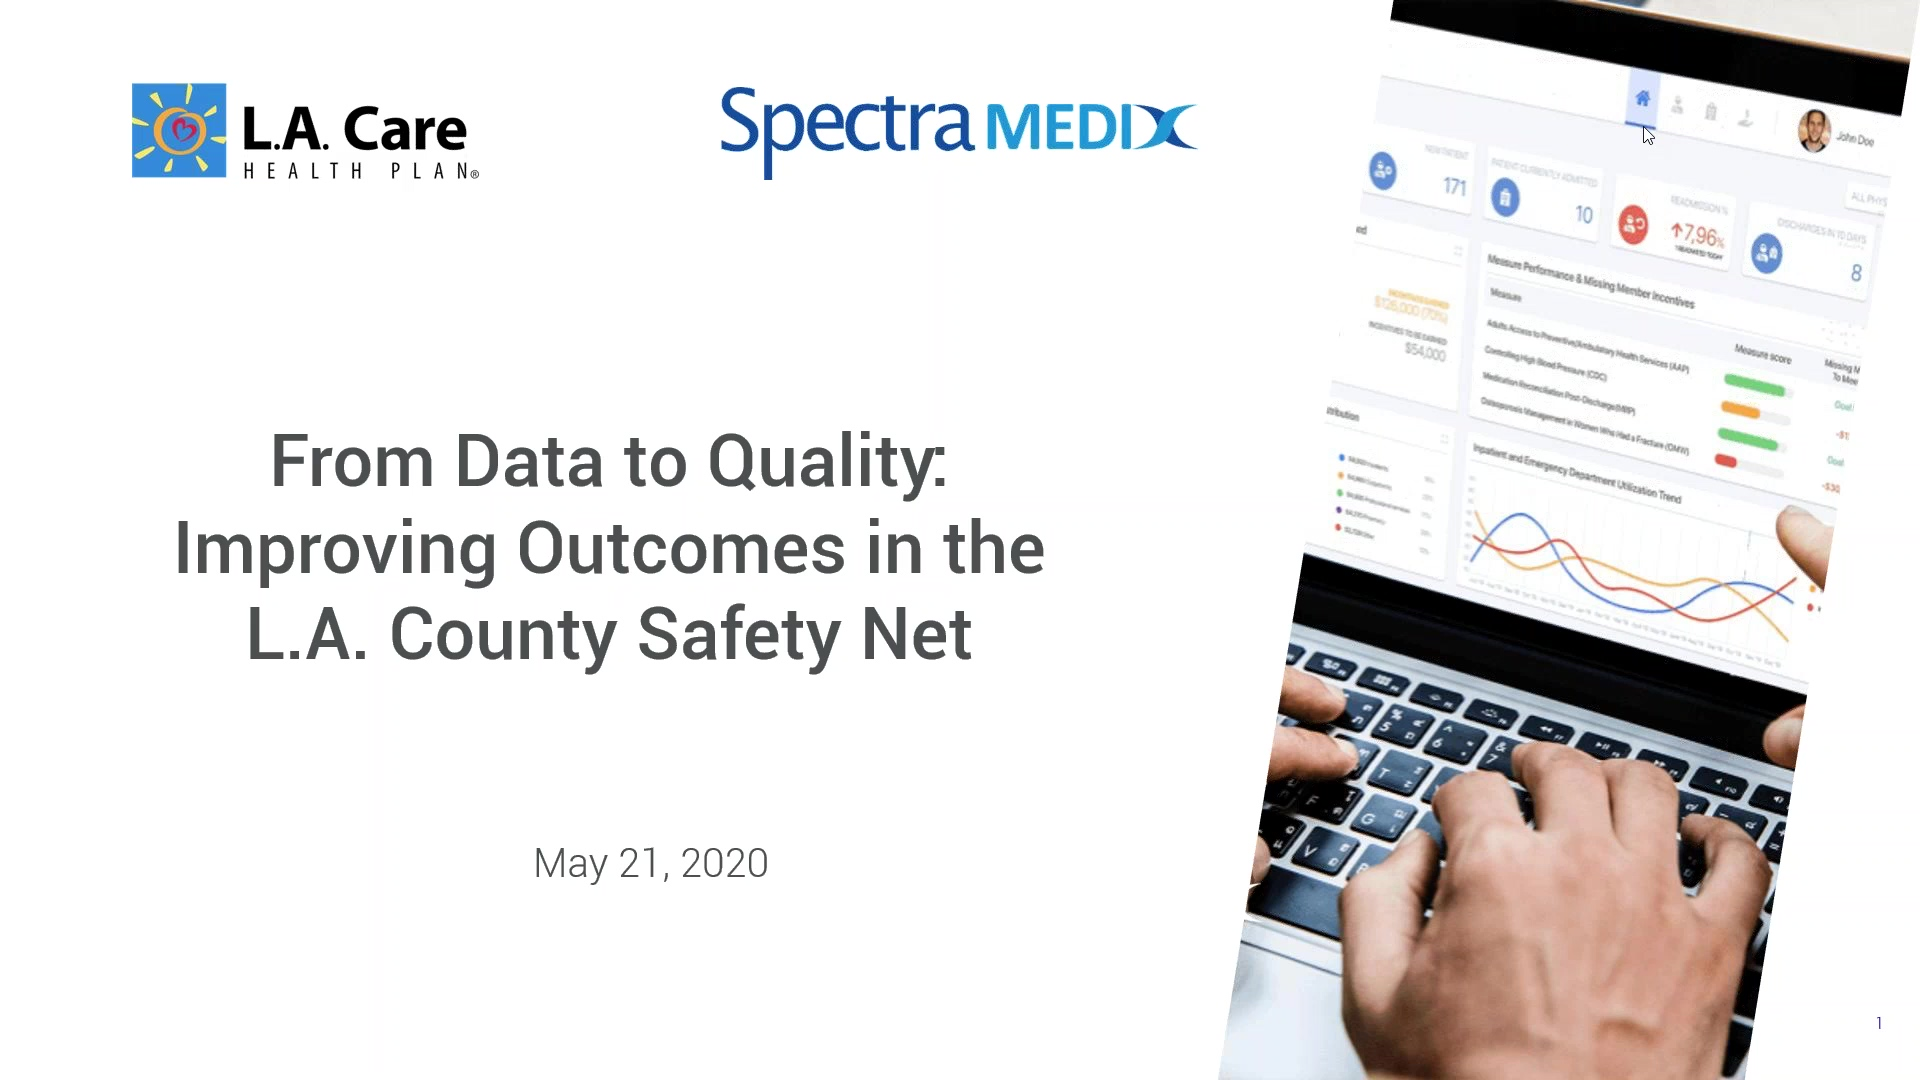 Data to Quality_ Improving L.A. County Safety Net Outcomes-thumb